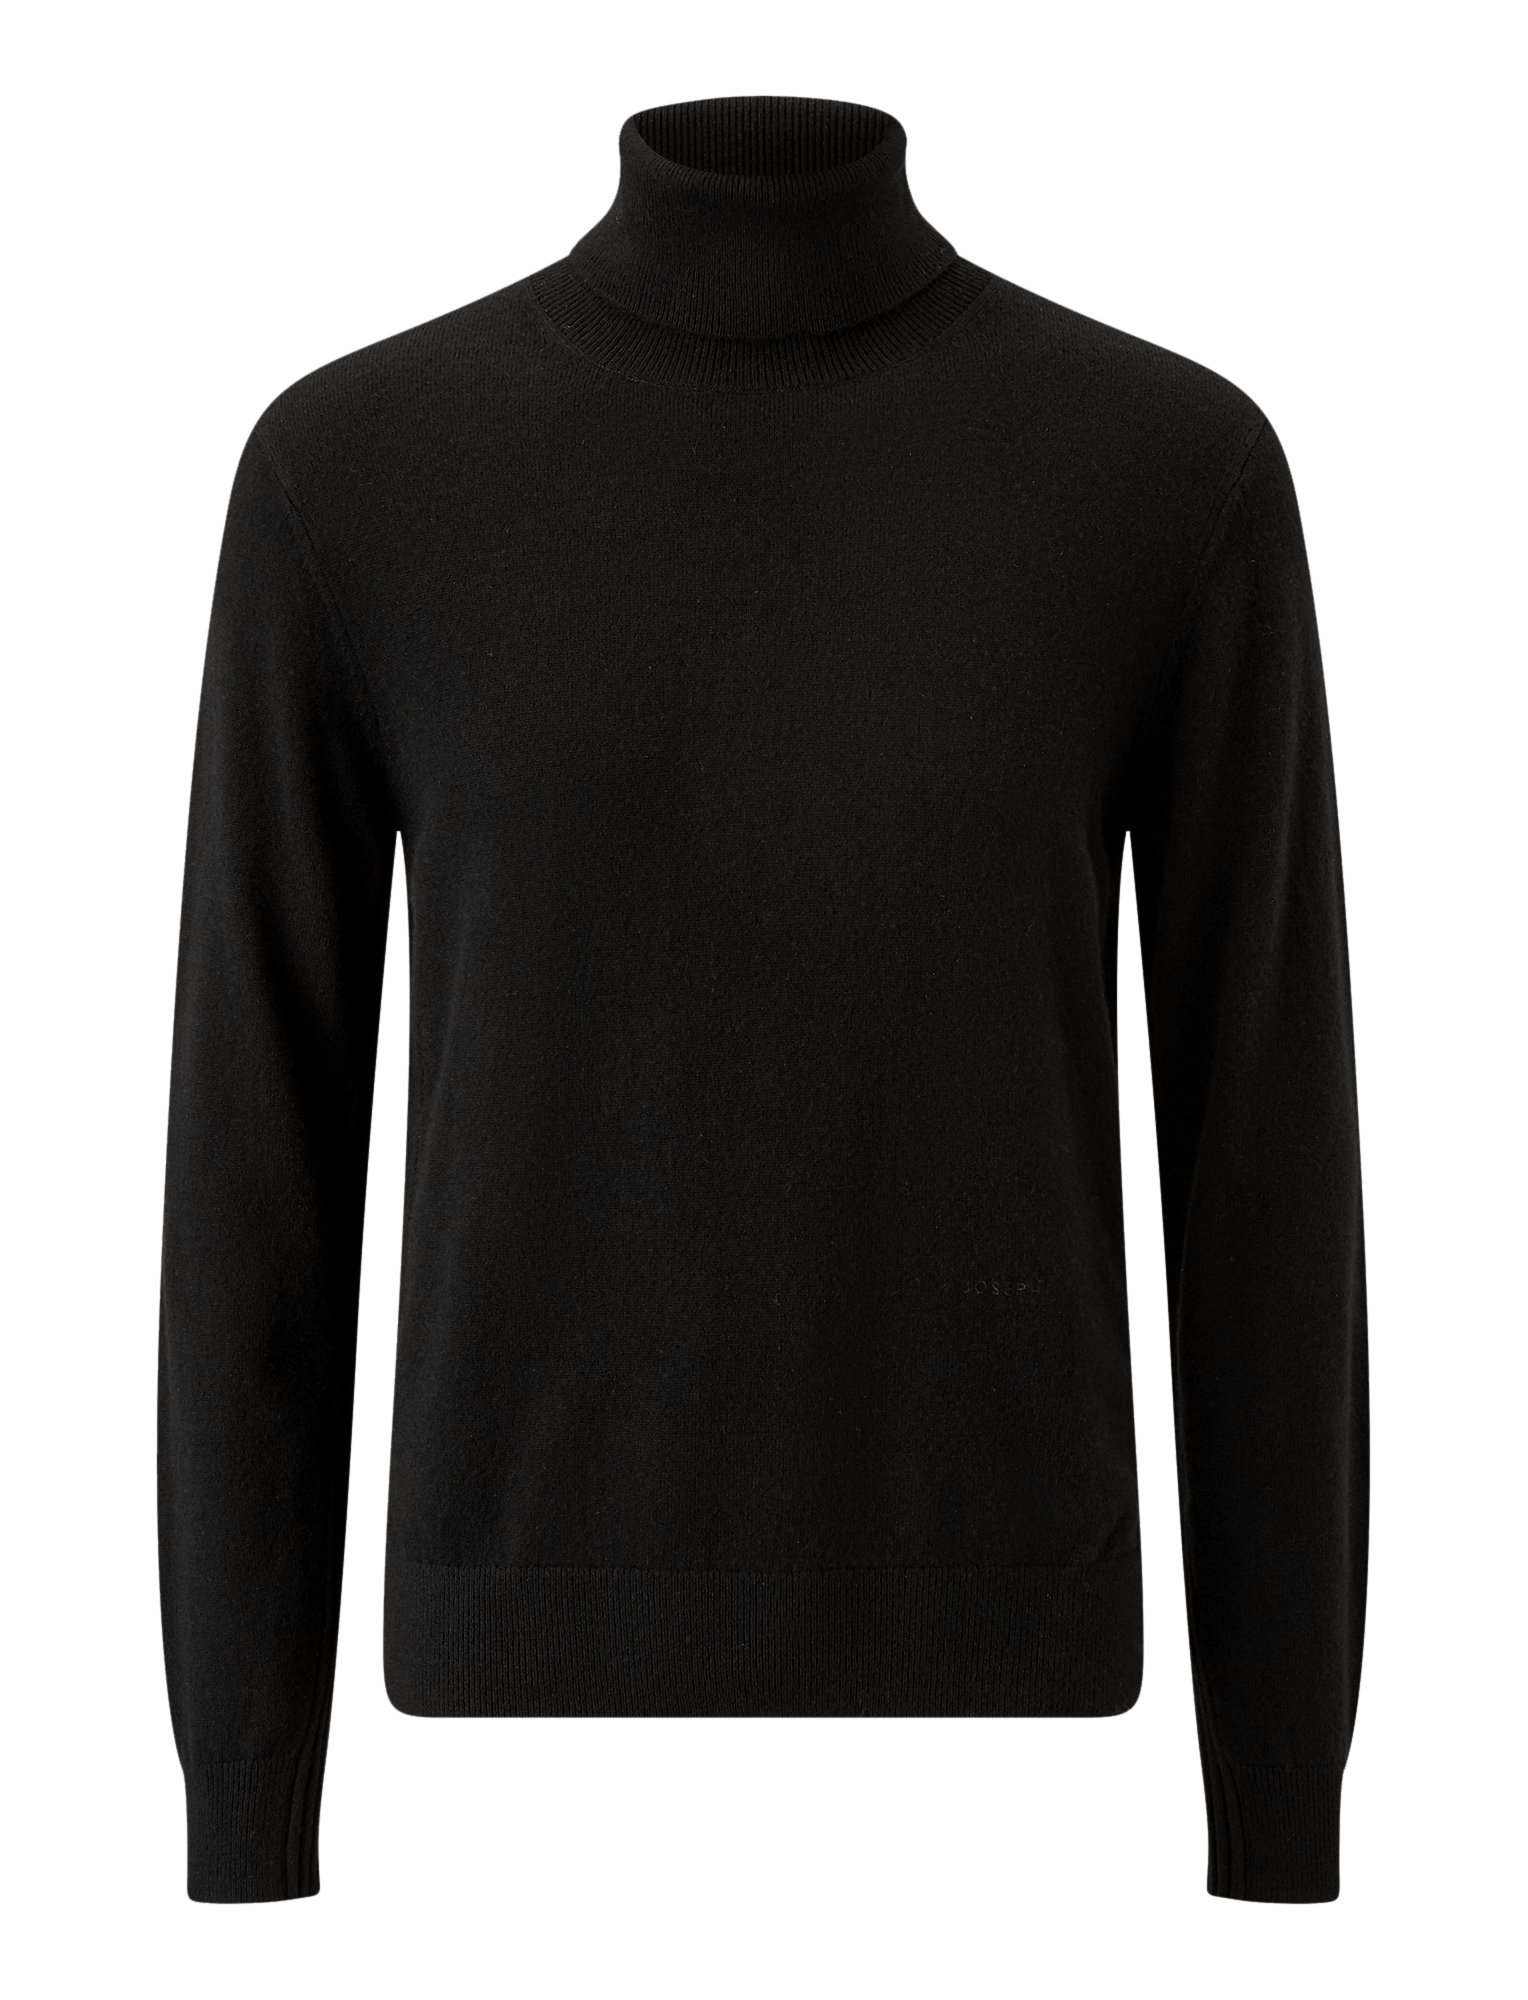 Joseph, High Neck Mongolian Cashmere Knit, in BLACK